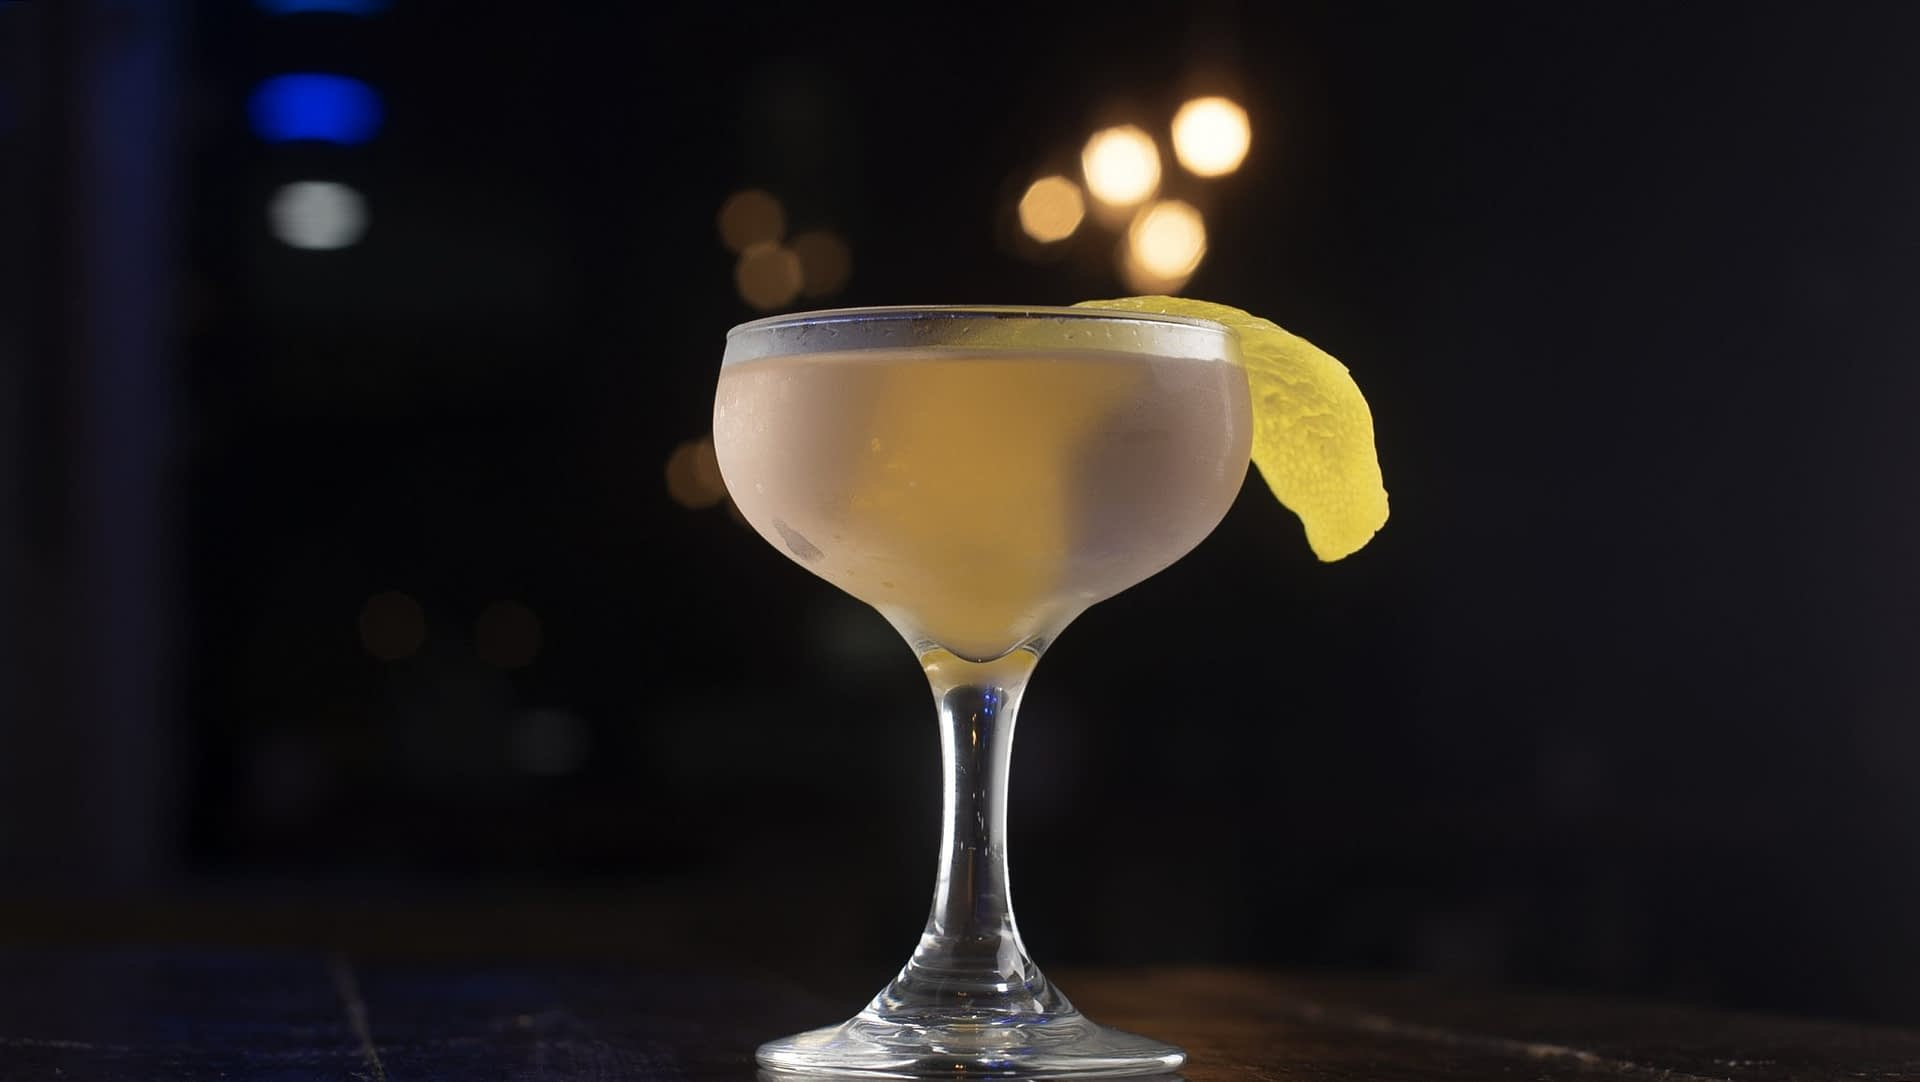 A blush colored cocktail served in a coupe and garnished with a lemon twist sits on top of a wooden surface on a dark background.